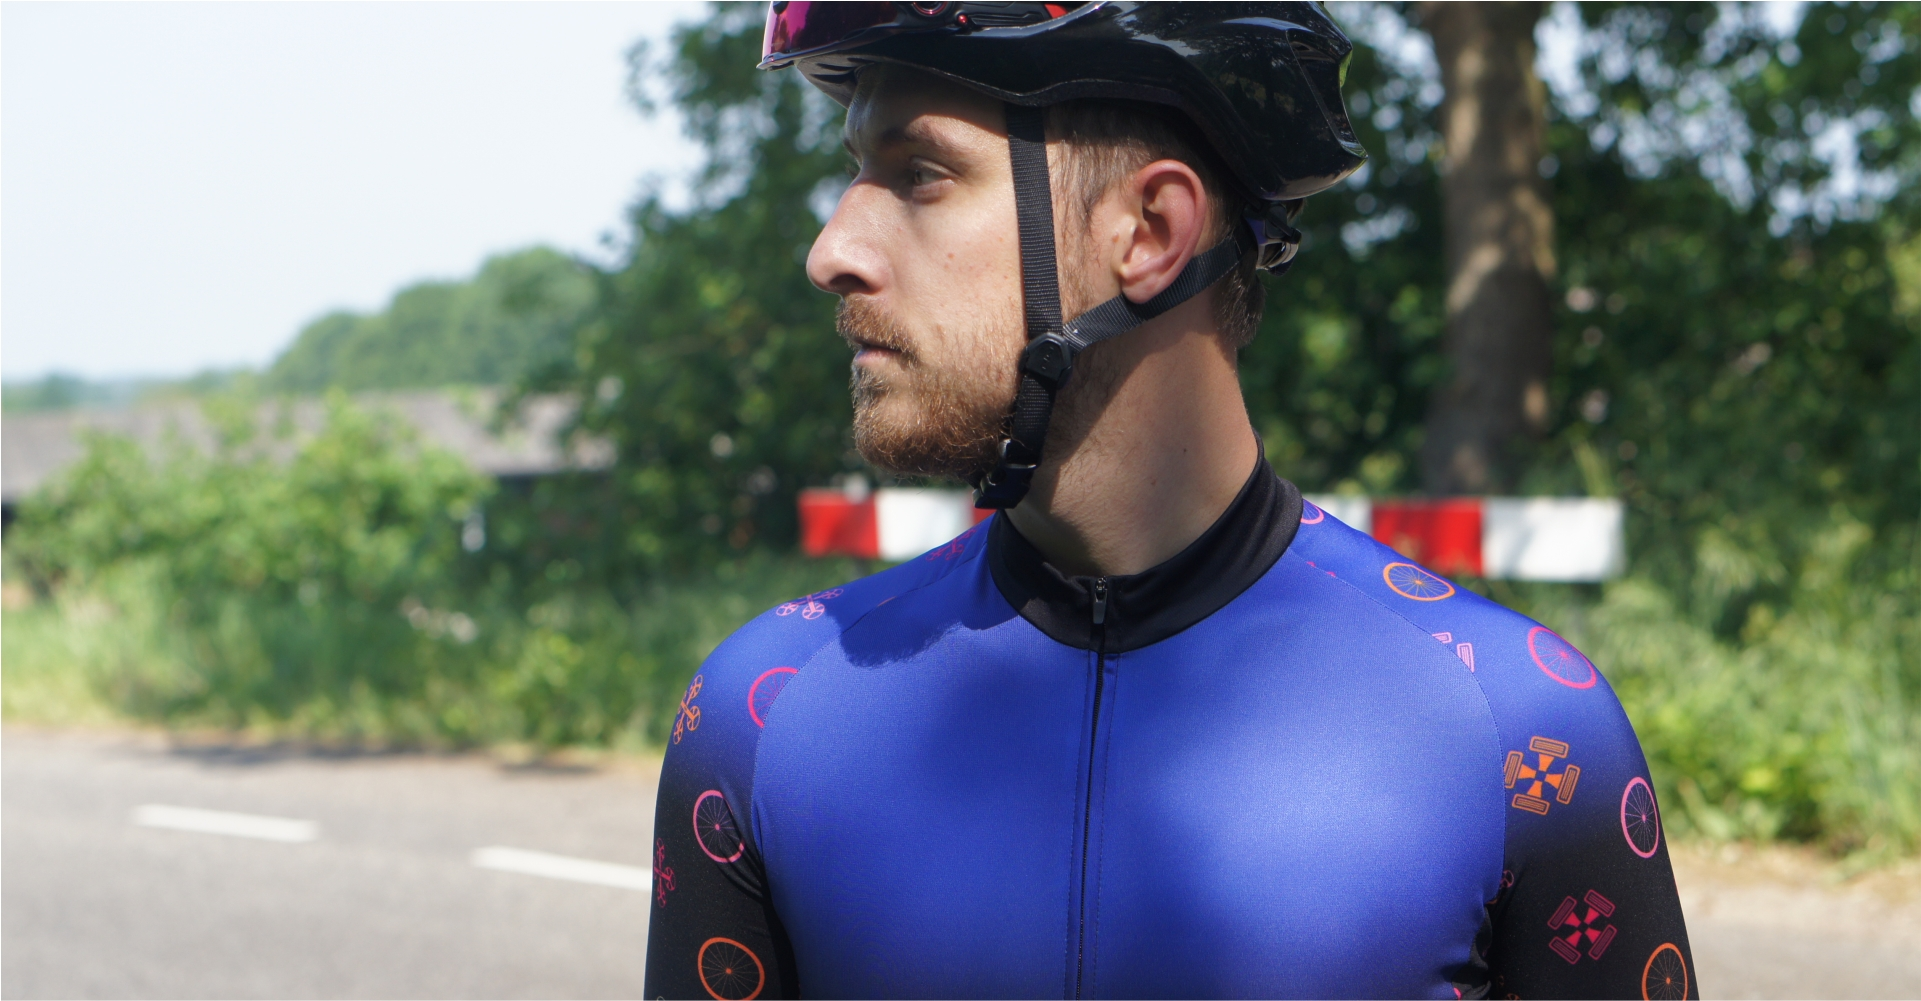 lust for cycling Allover men big picture 1